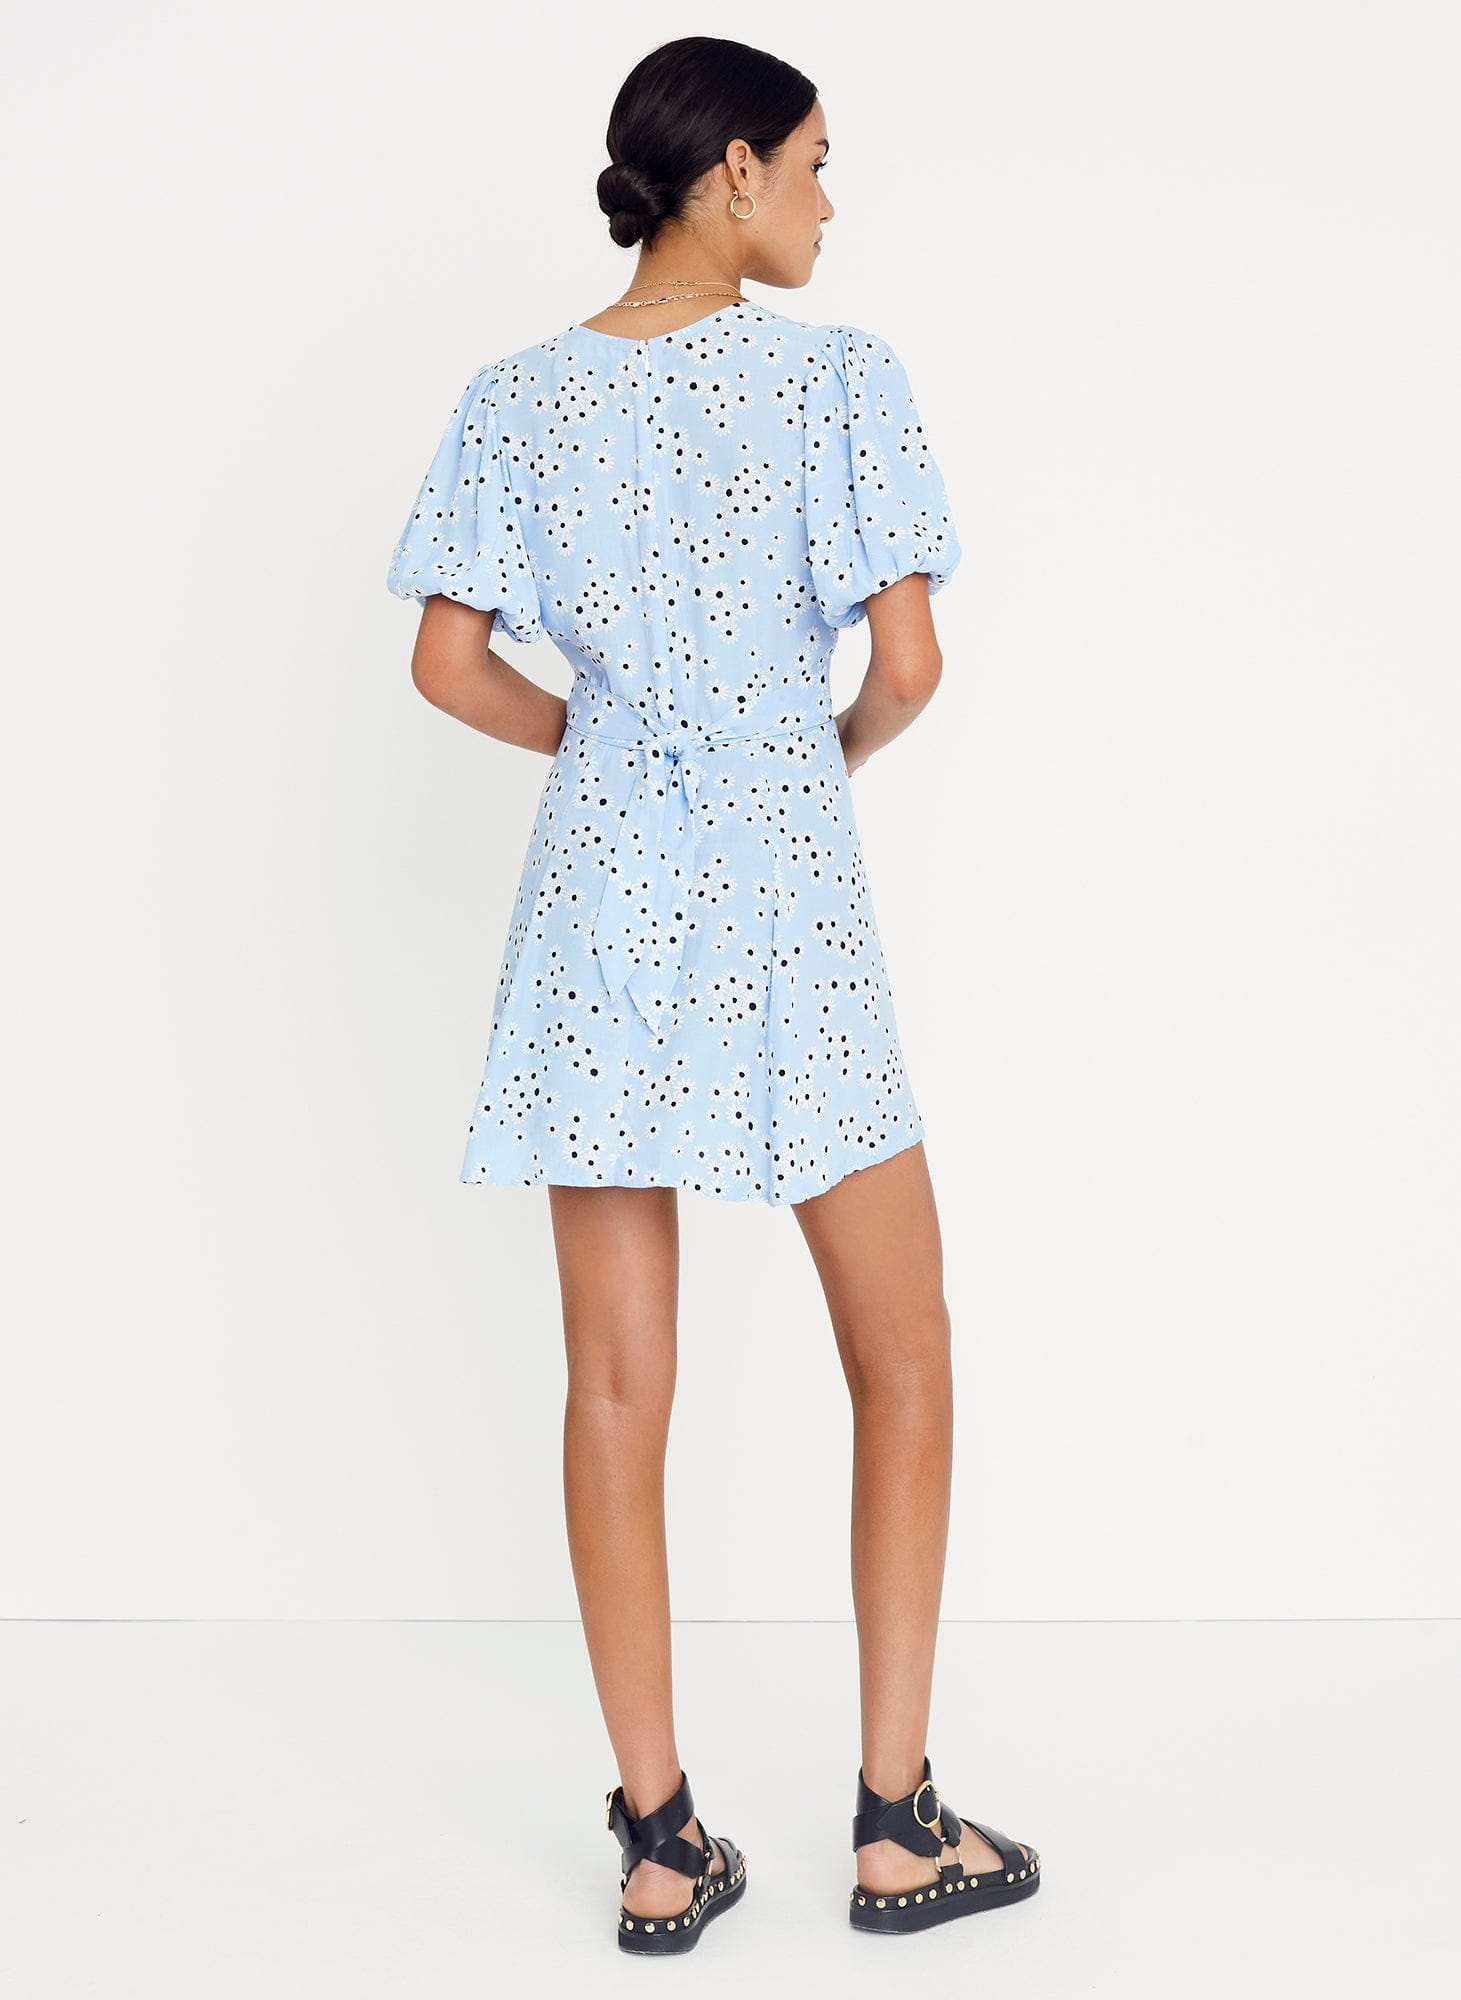 ESSA FLORAL PRINT - RIVIERA BLUE - ILIA MINI DRESS